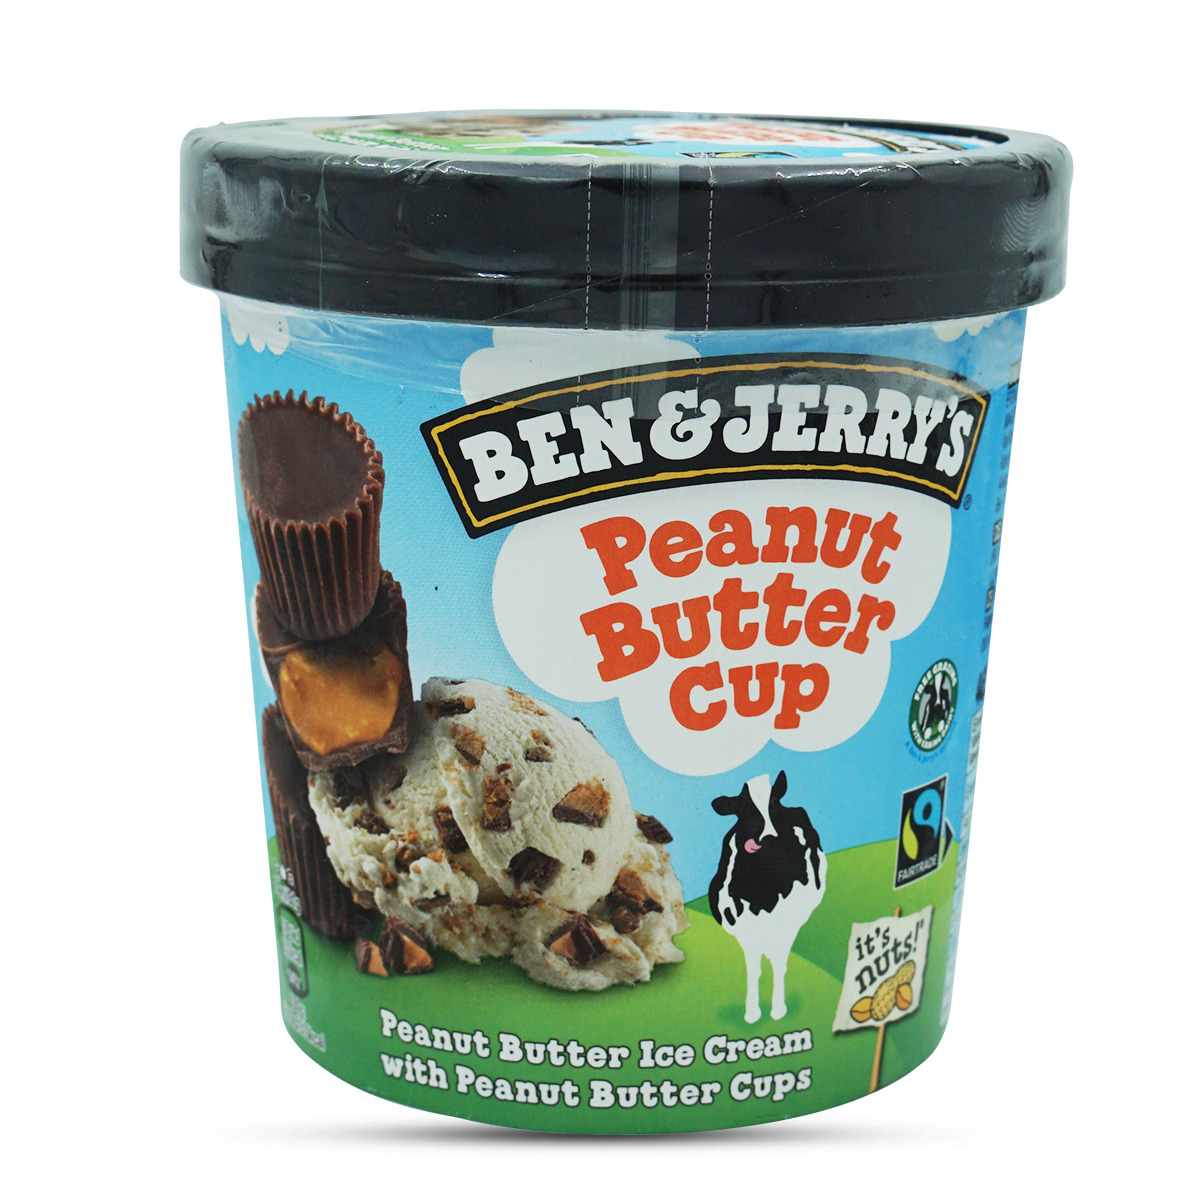 Ben & Jerry's Glace Peanut Butter Cup